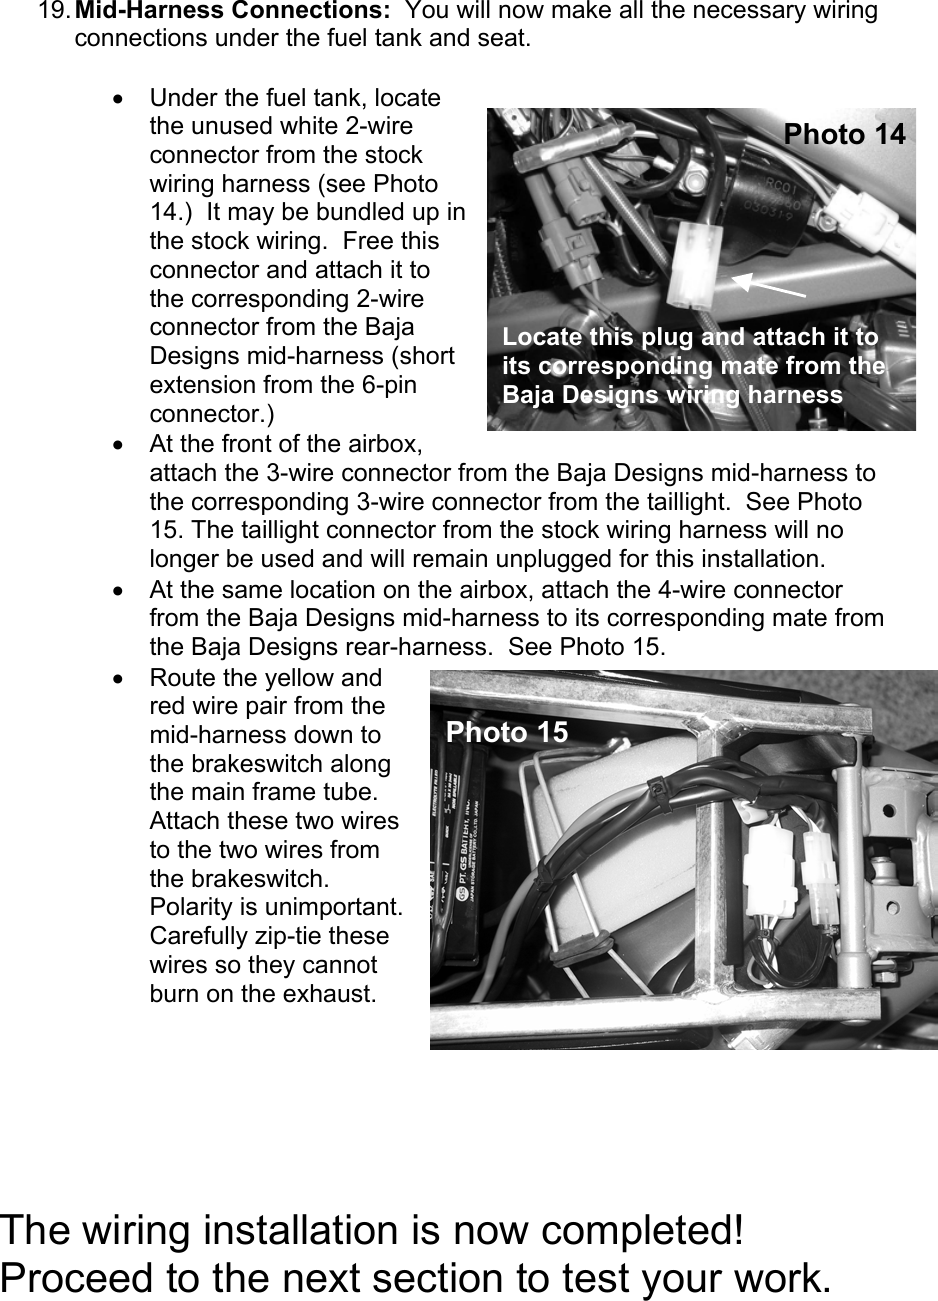 Ktm Dual Sport Kit Installation Manual 04 450 525 Exc User To The Wiring Harness Page 7 Of 10